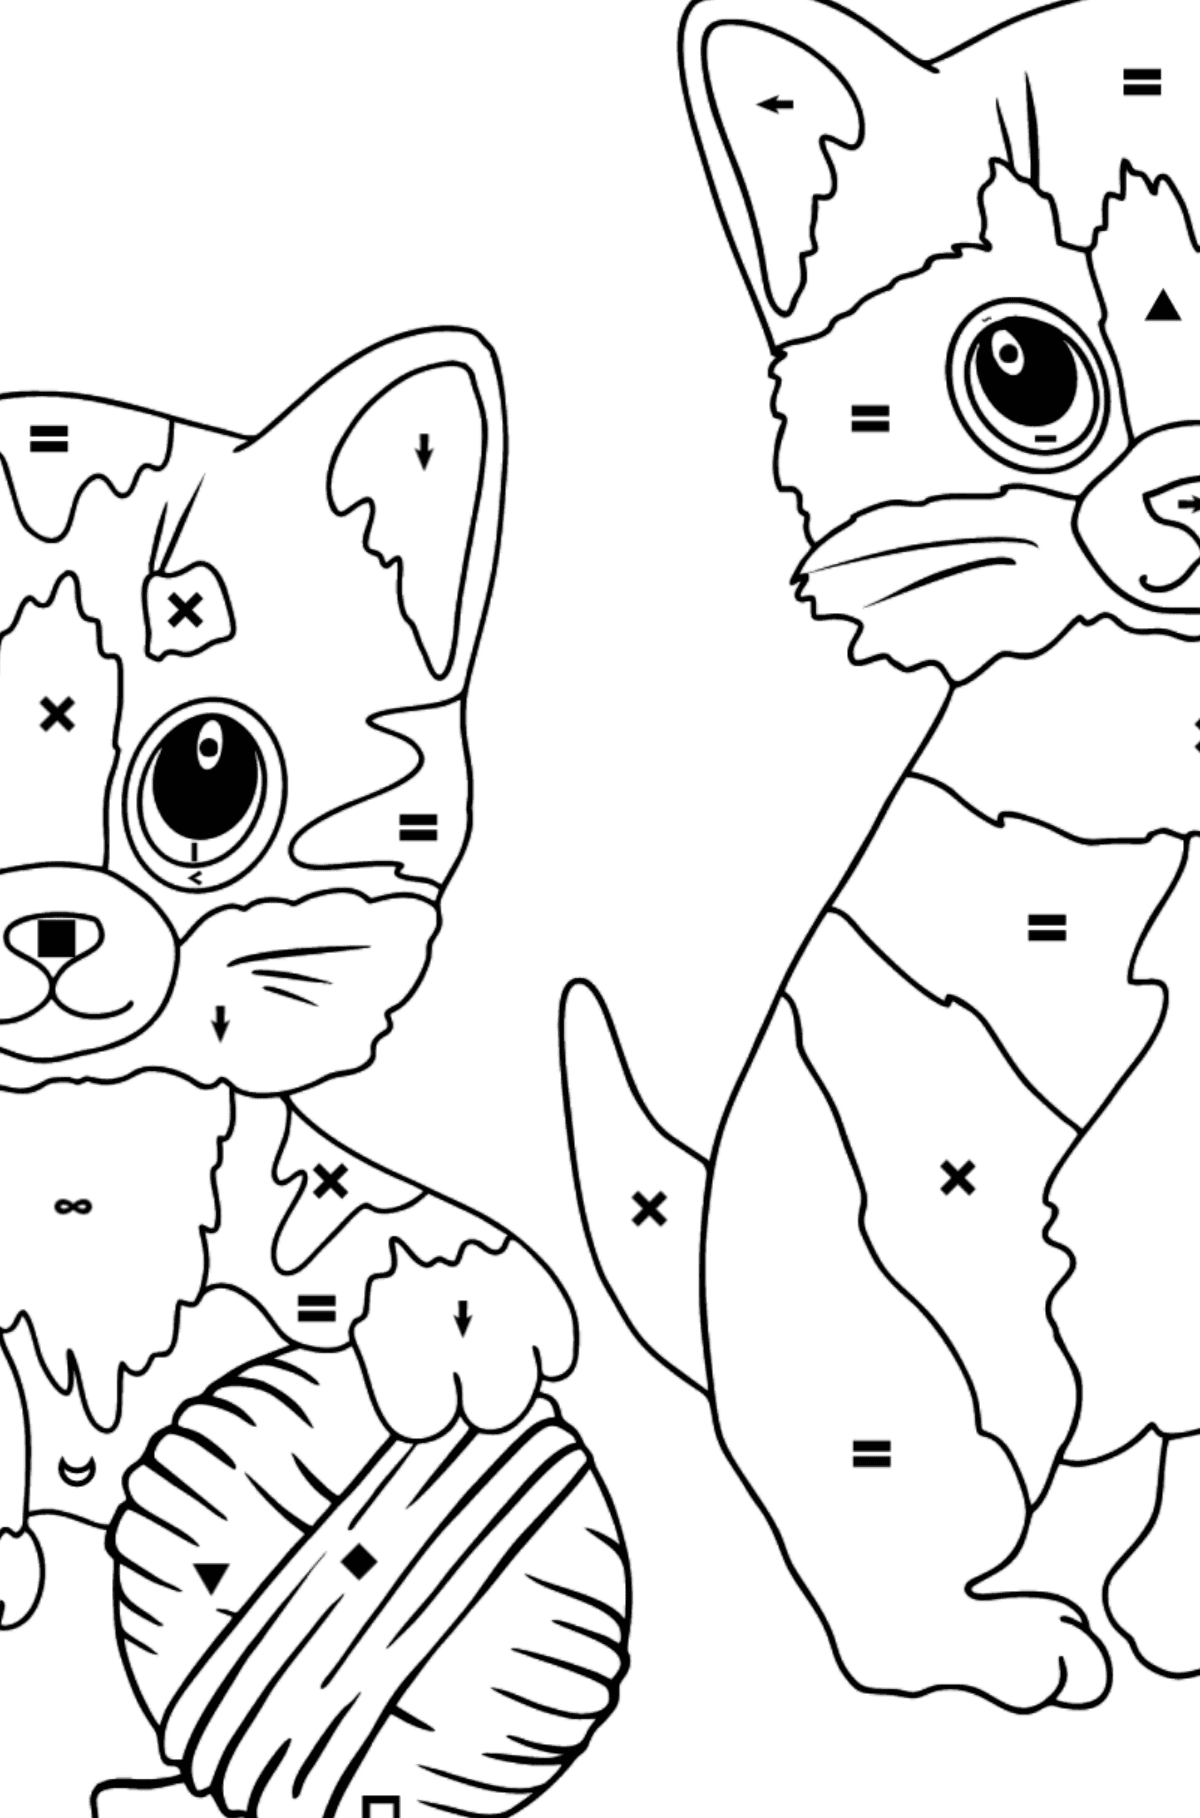 Coloring Page - Kitty Cat - Coloring by Symbols for Kids